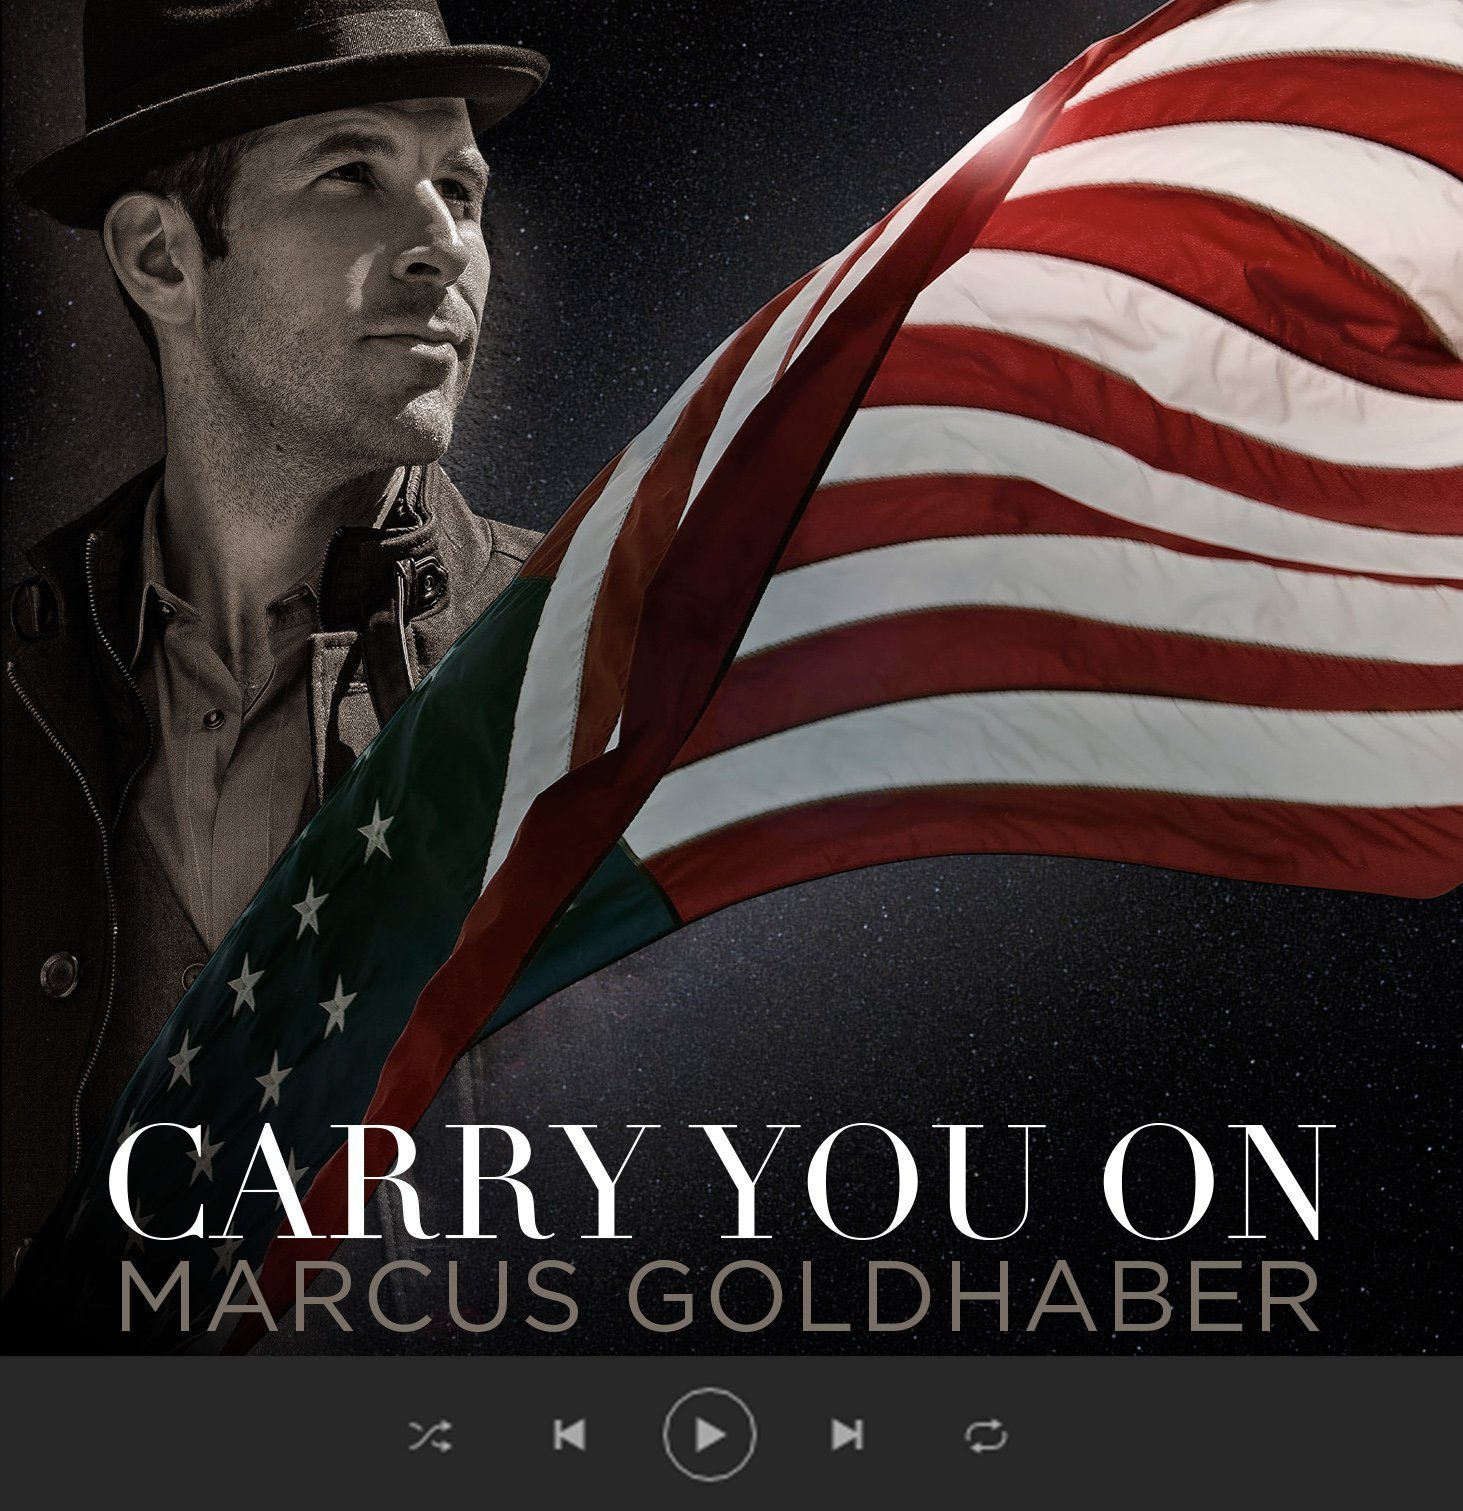 Carry You On